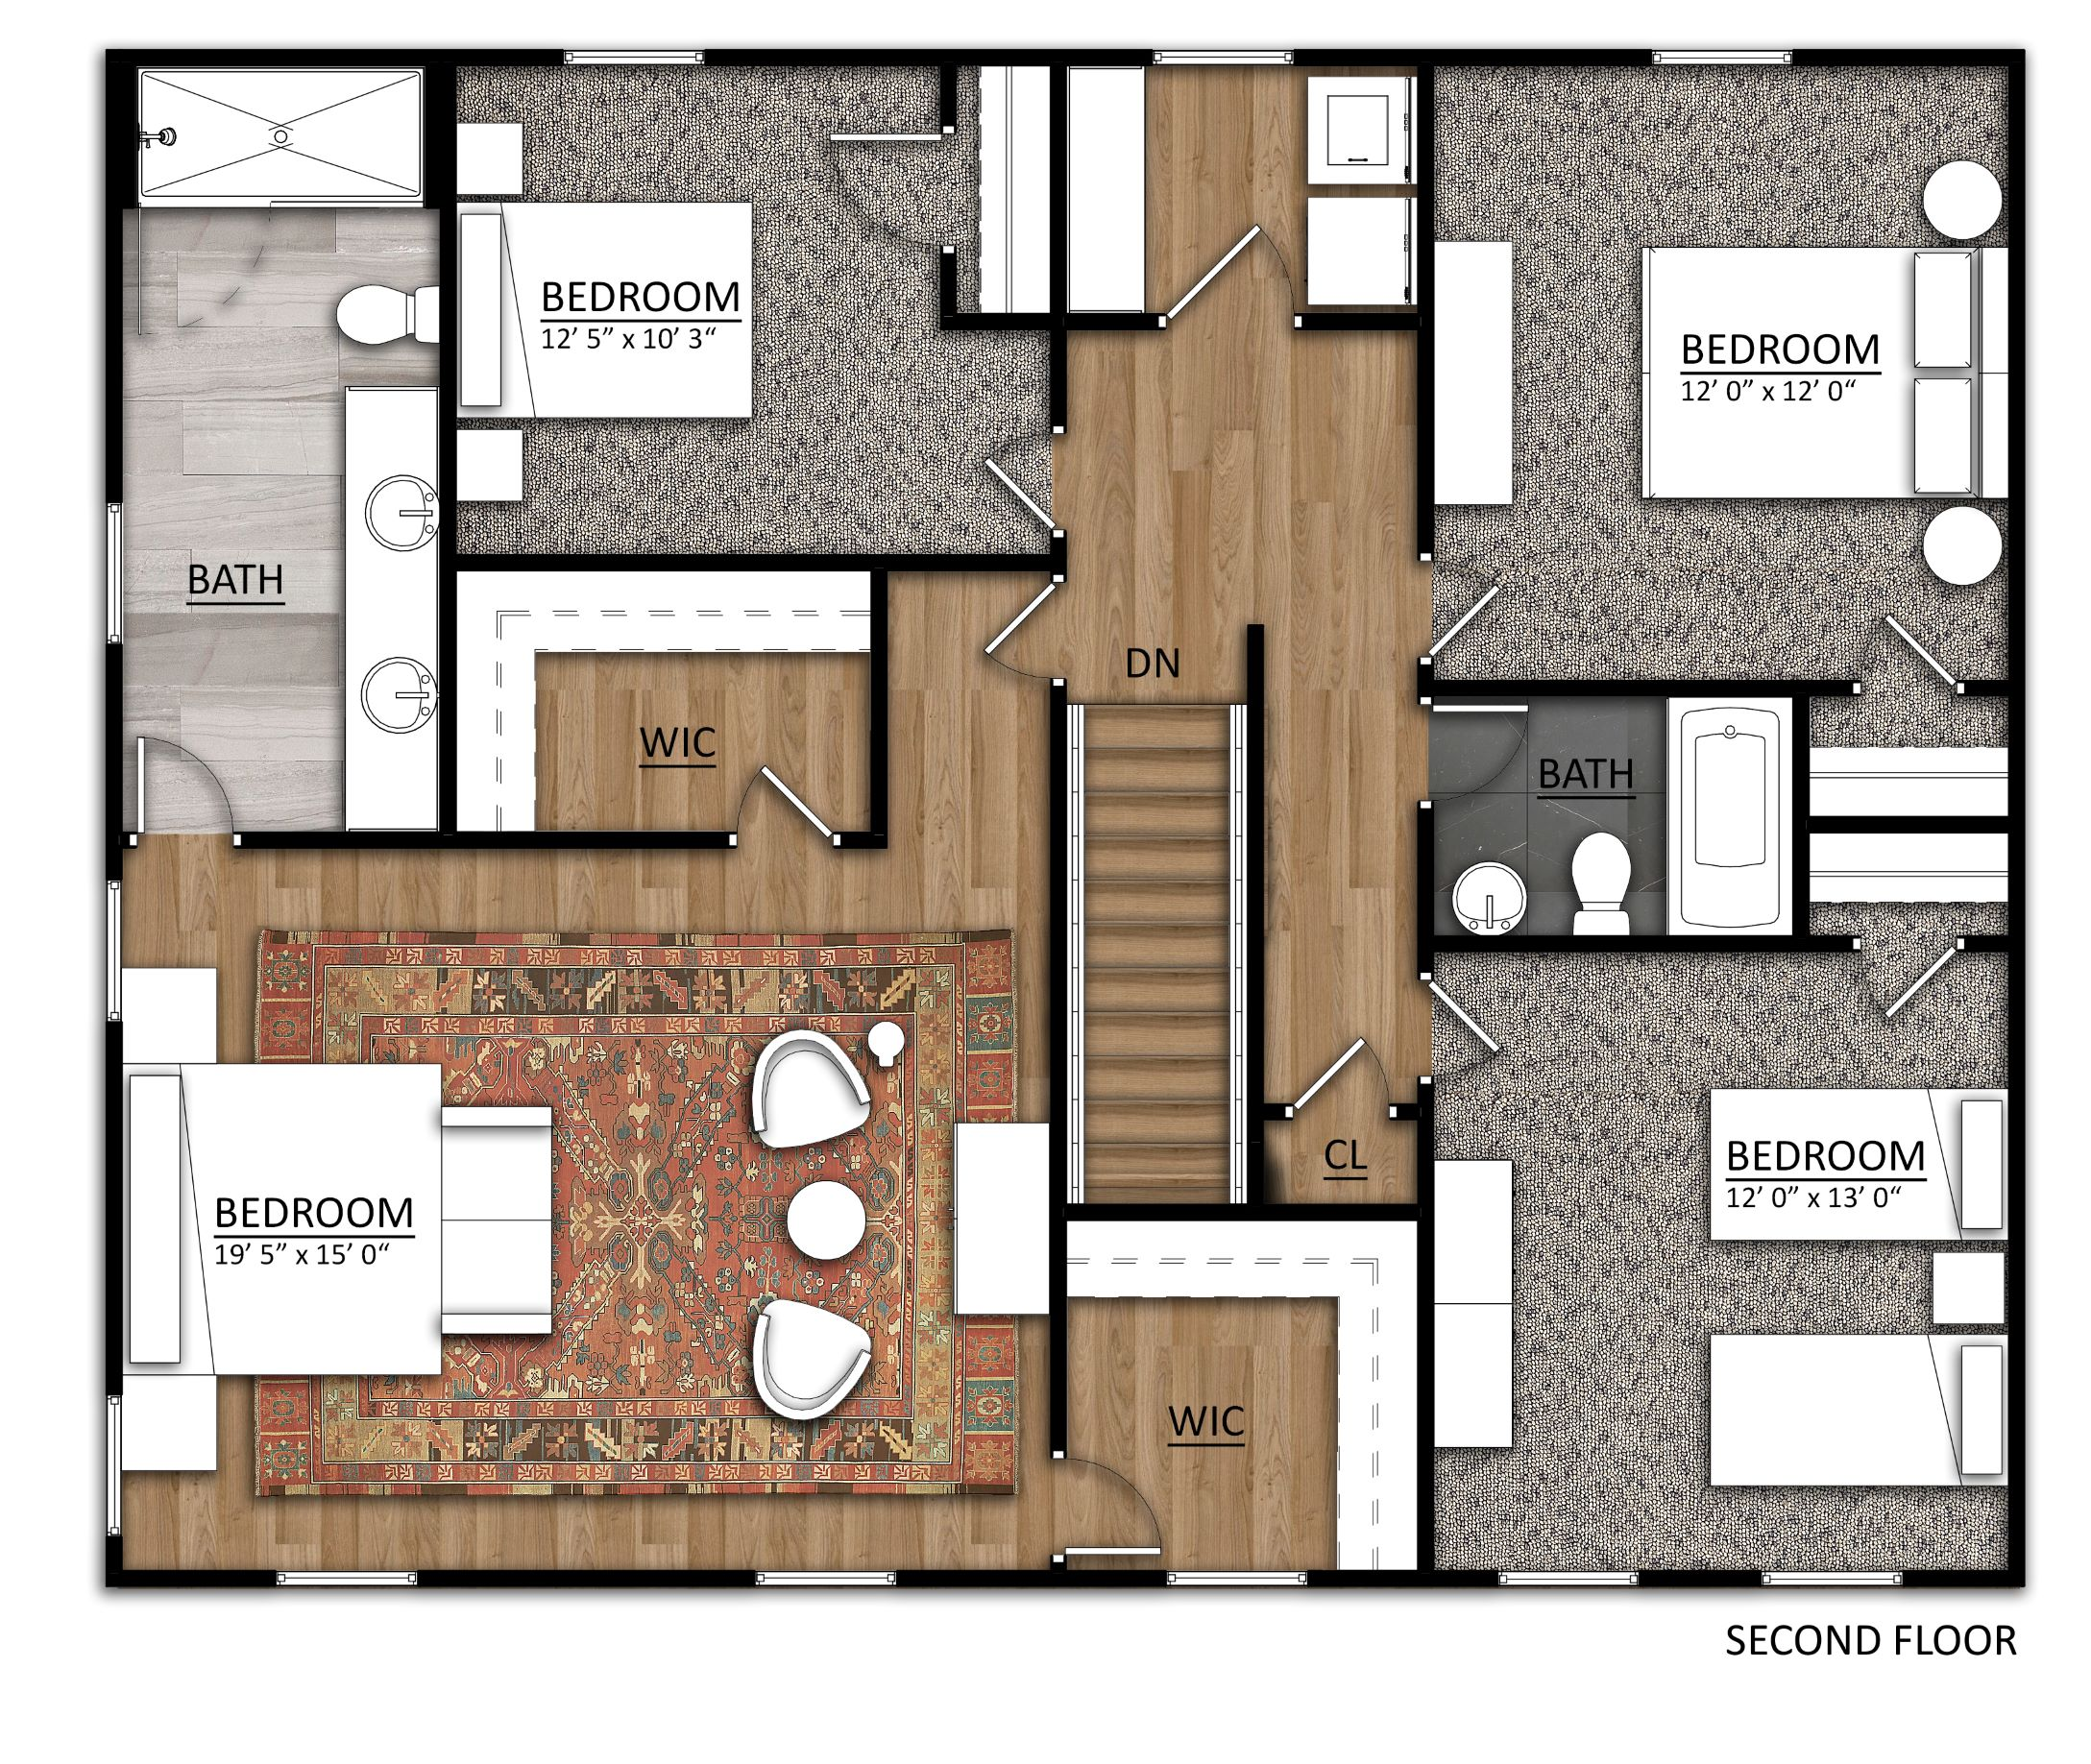 new floor plan second floor